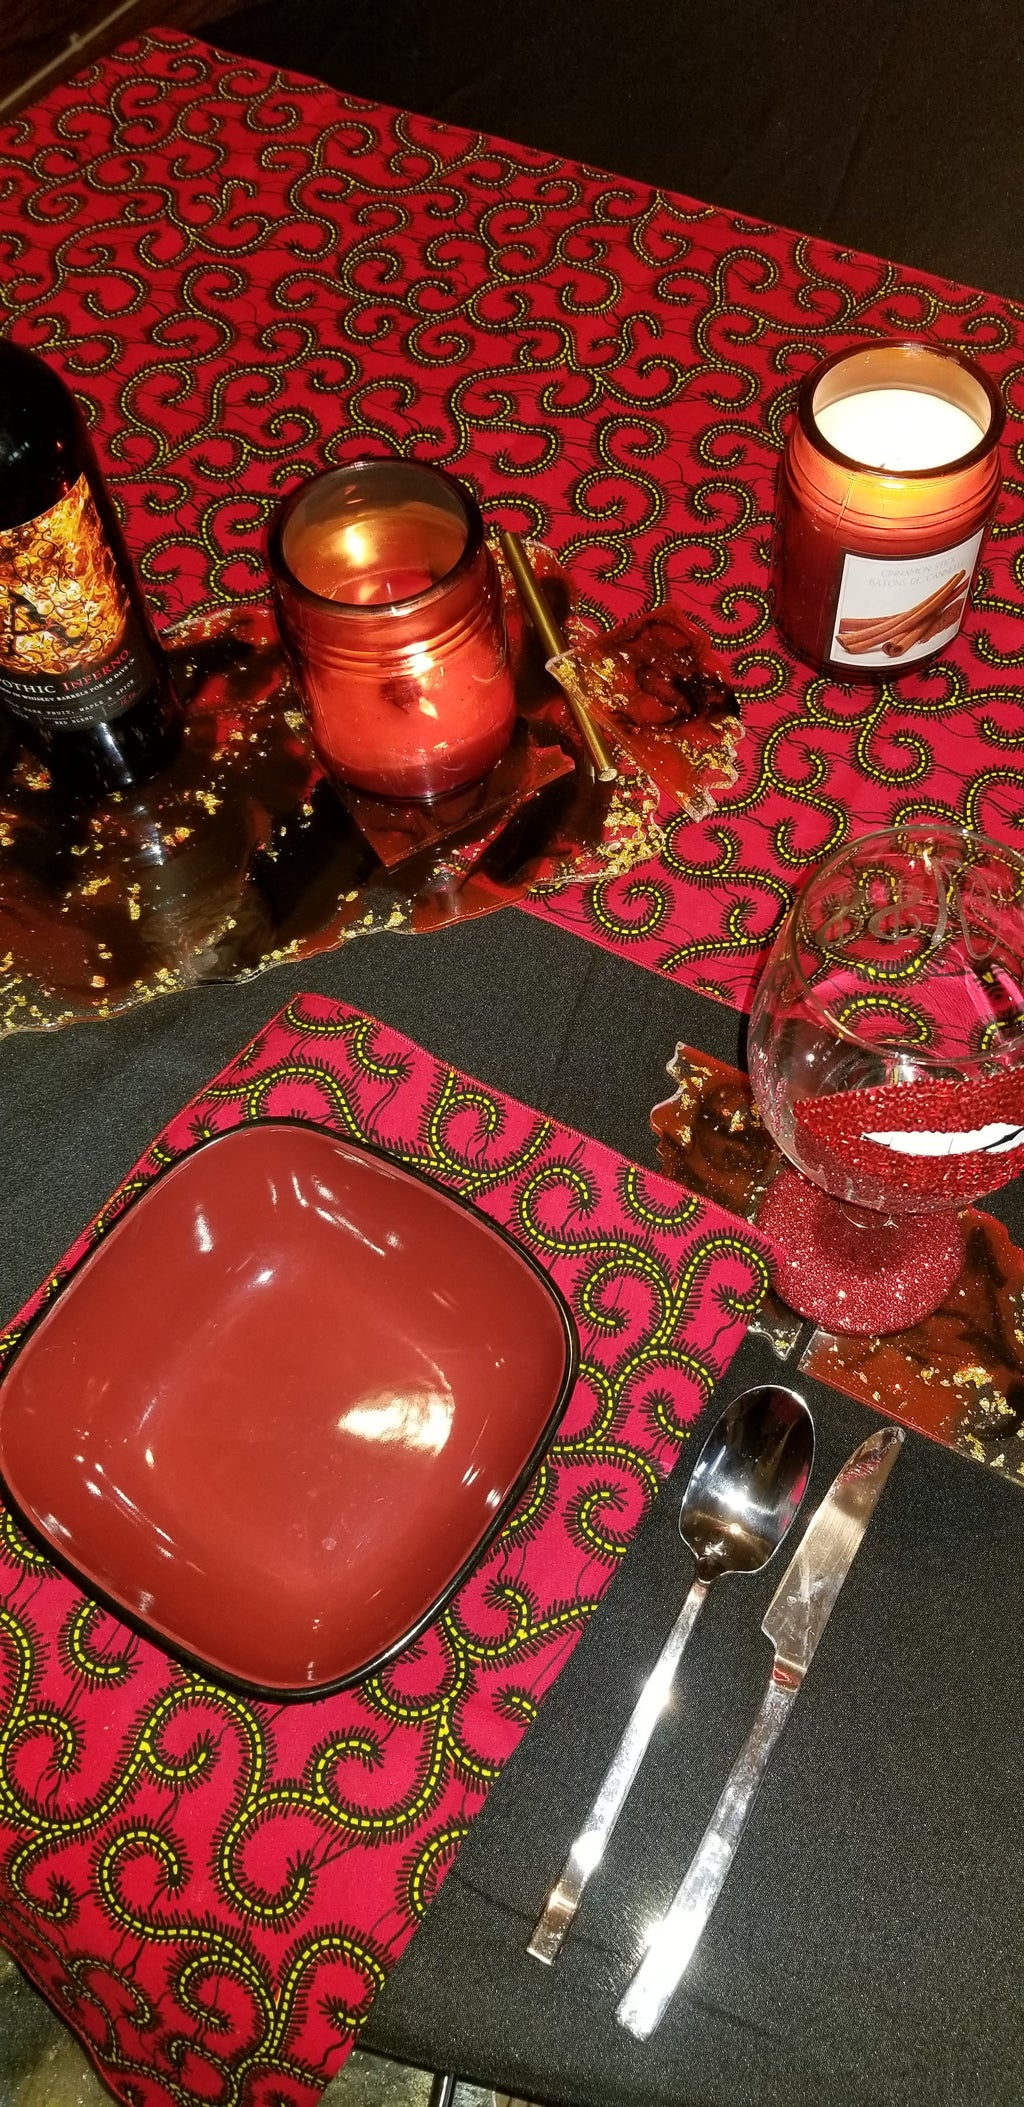 Red Swirl Runner and Napkin Set